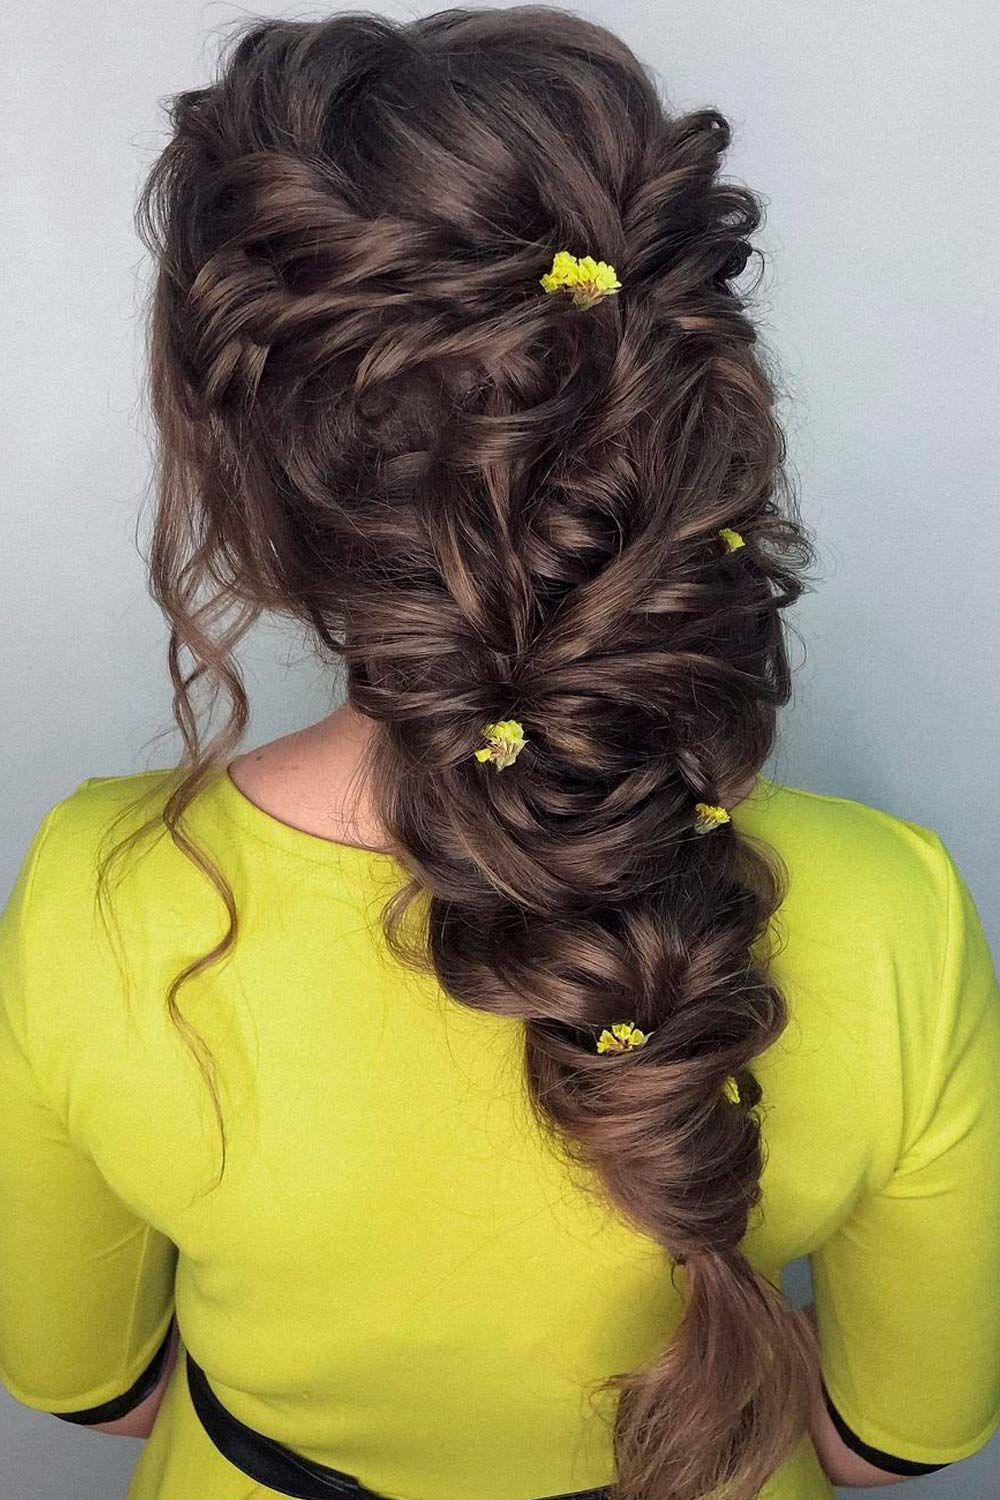 Topsy Tail Braid Hairstyle